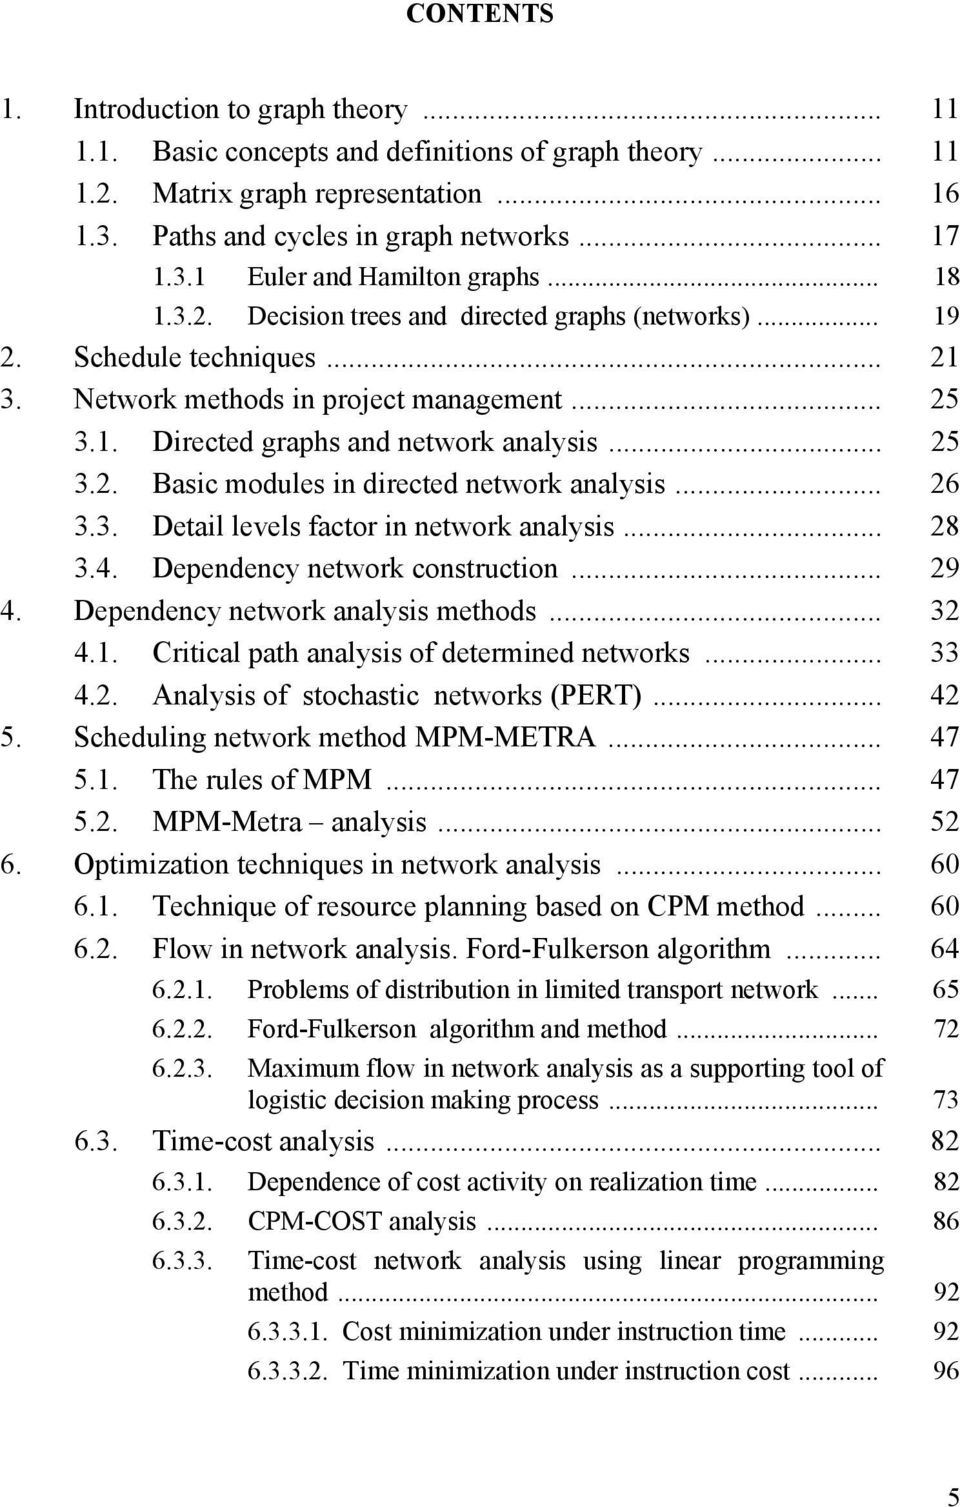 .. 26 3.3. Detail levels factor in network analysis... 28 3.4. Dependency network construction... 29 4. Dependency network analysis methods... 32 4.1. Critical path analysis of determined networks.